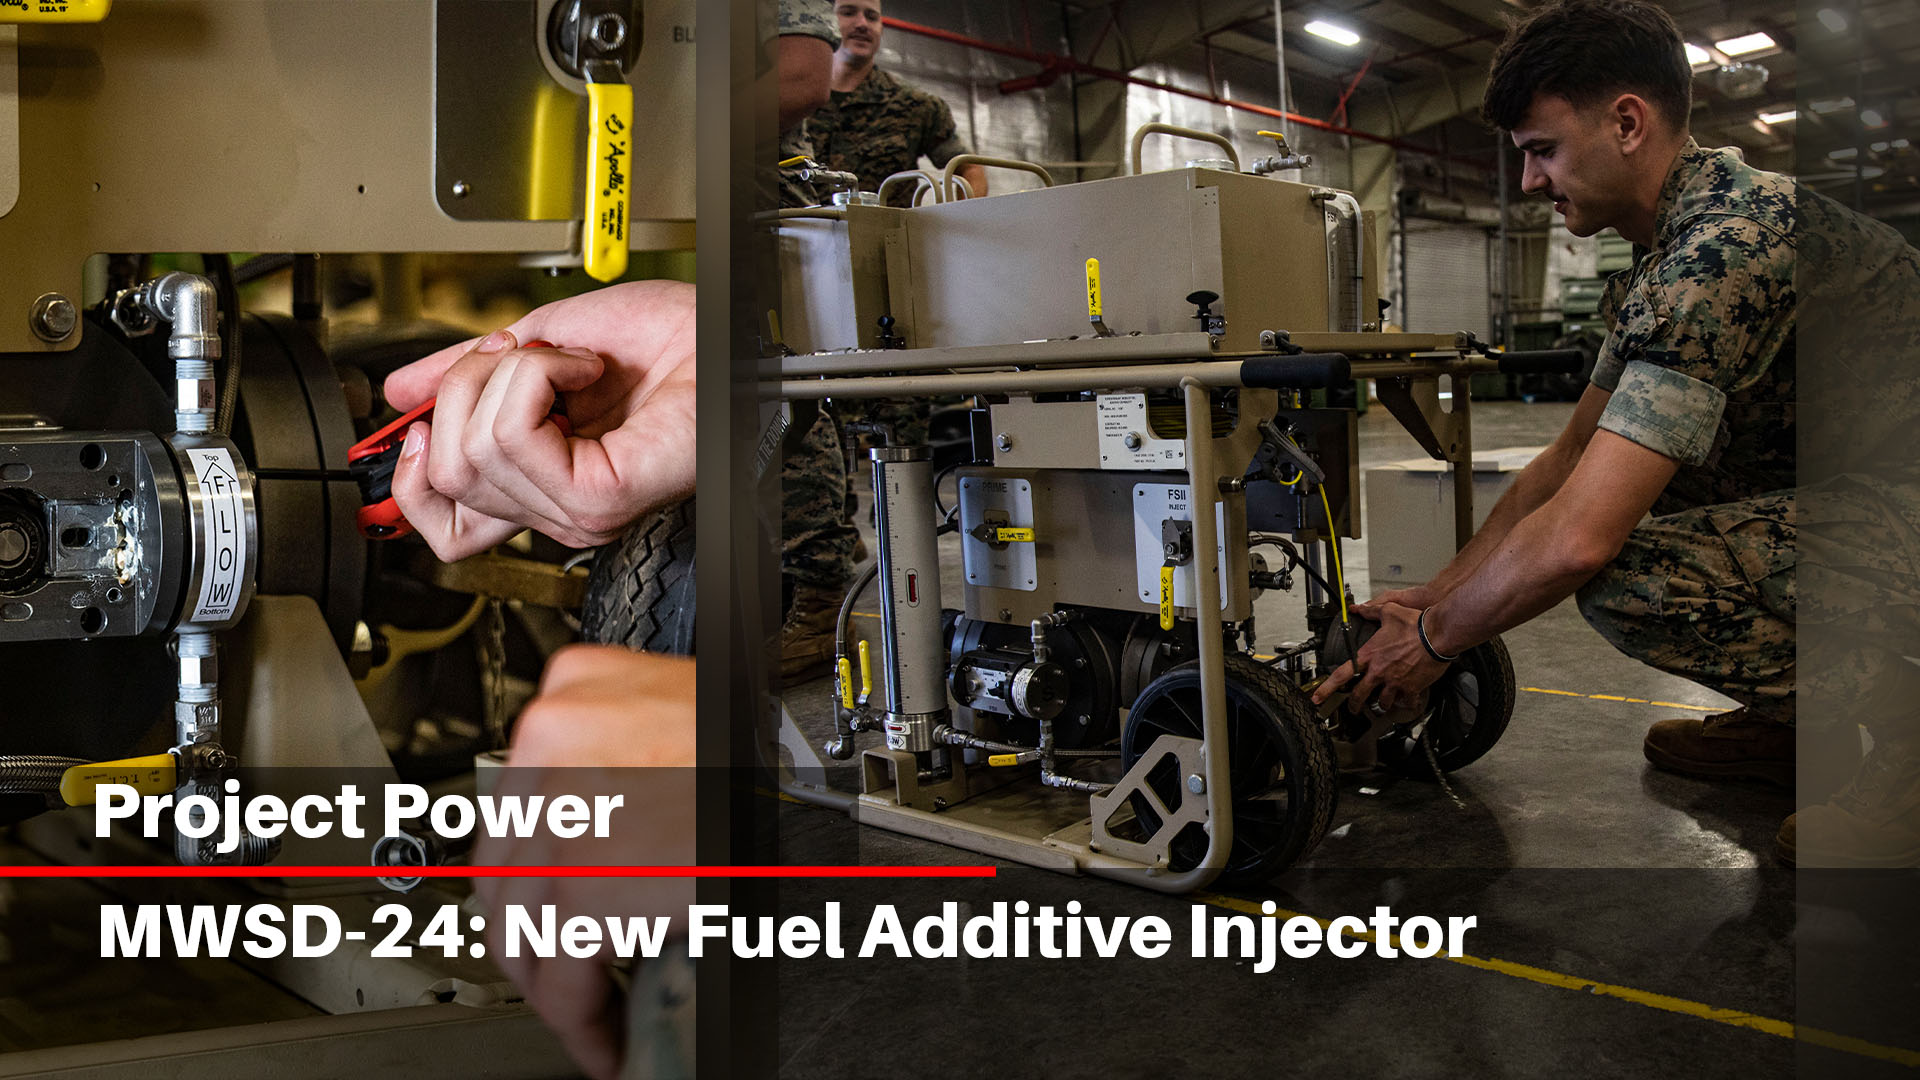 MWSD-24: New Fuel Additive Injector